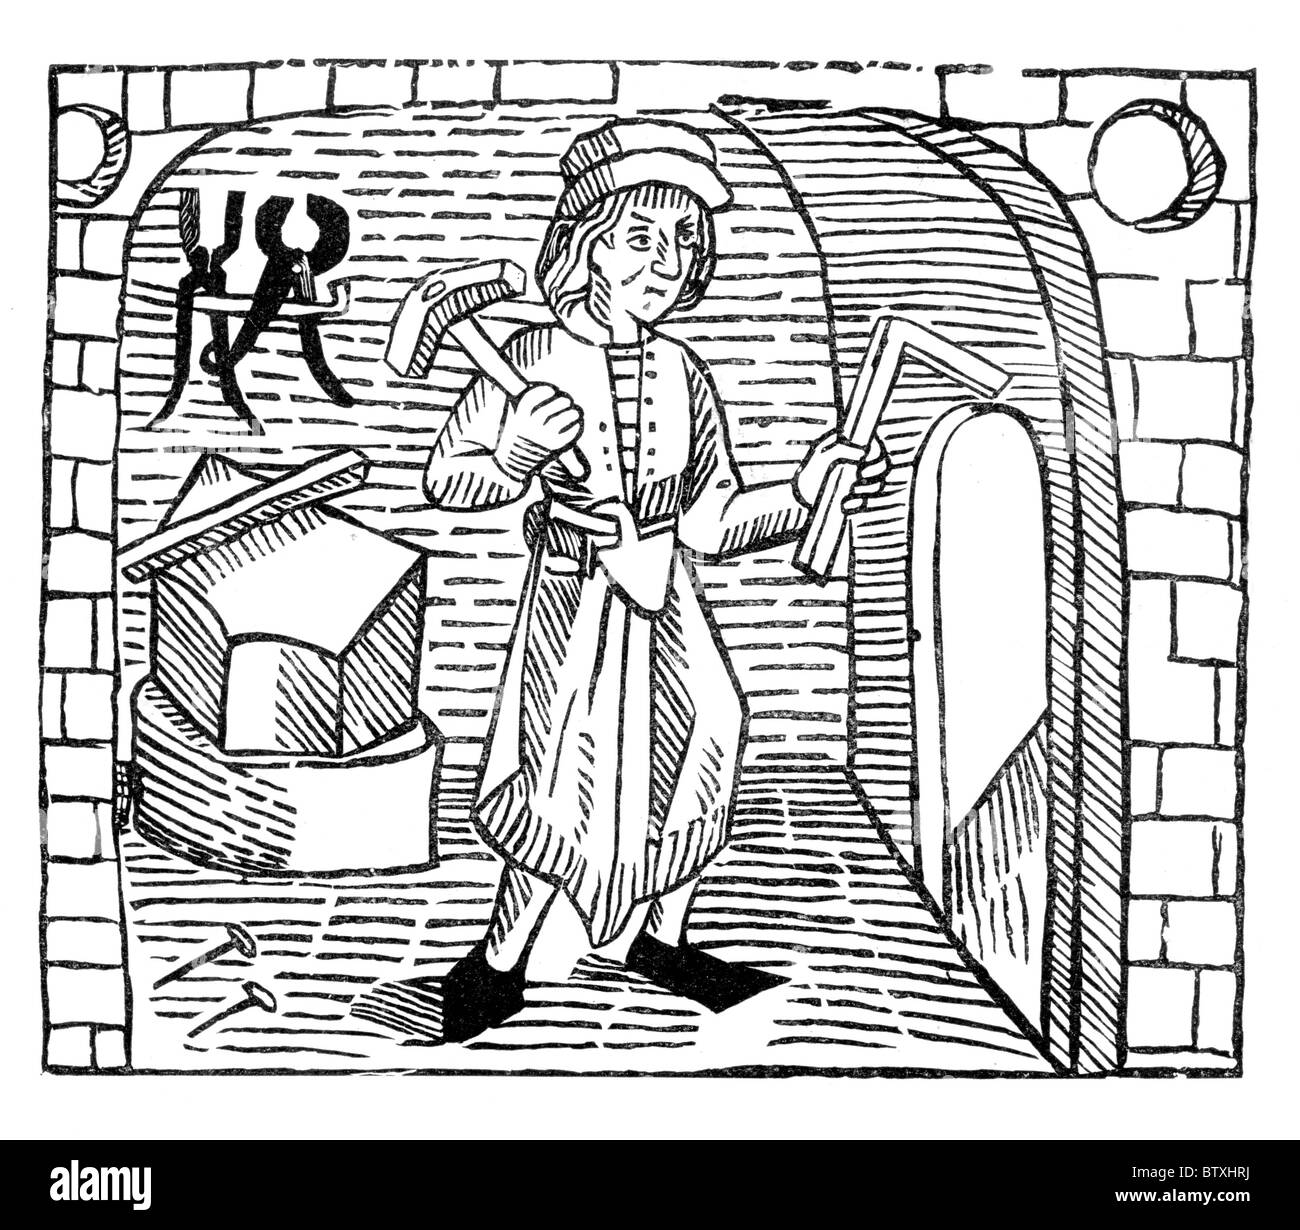 The Smith, form William Caxton's 'Game and Playe of the Chesse' published in 1474; Black and White Illustration; - Stock Image